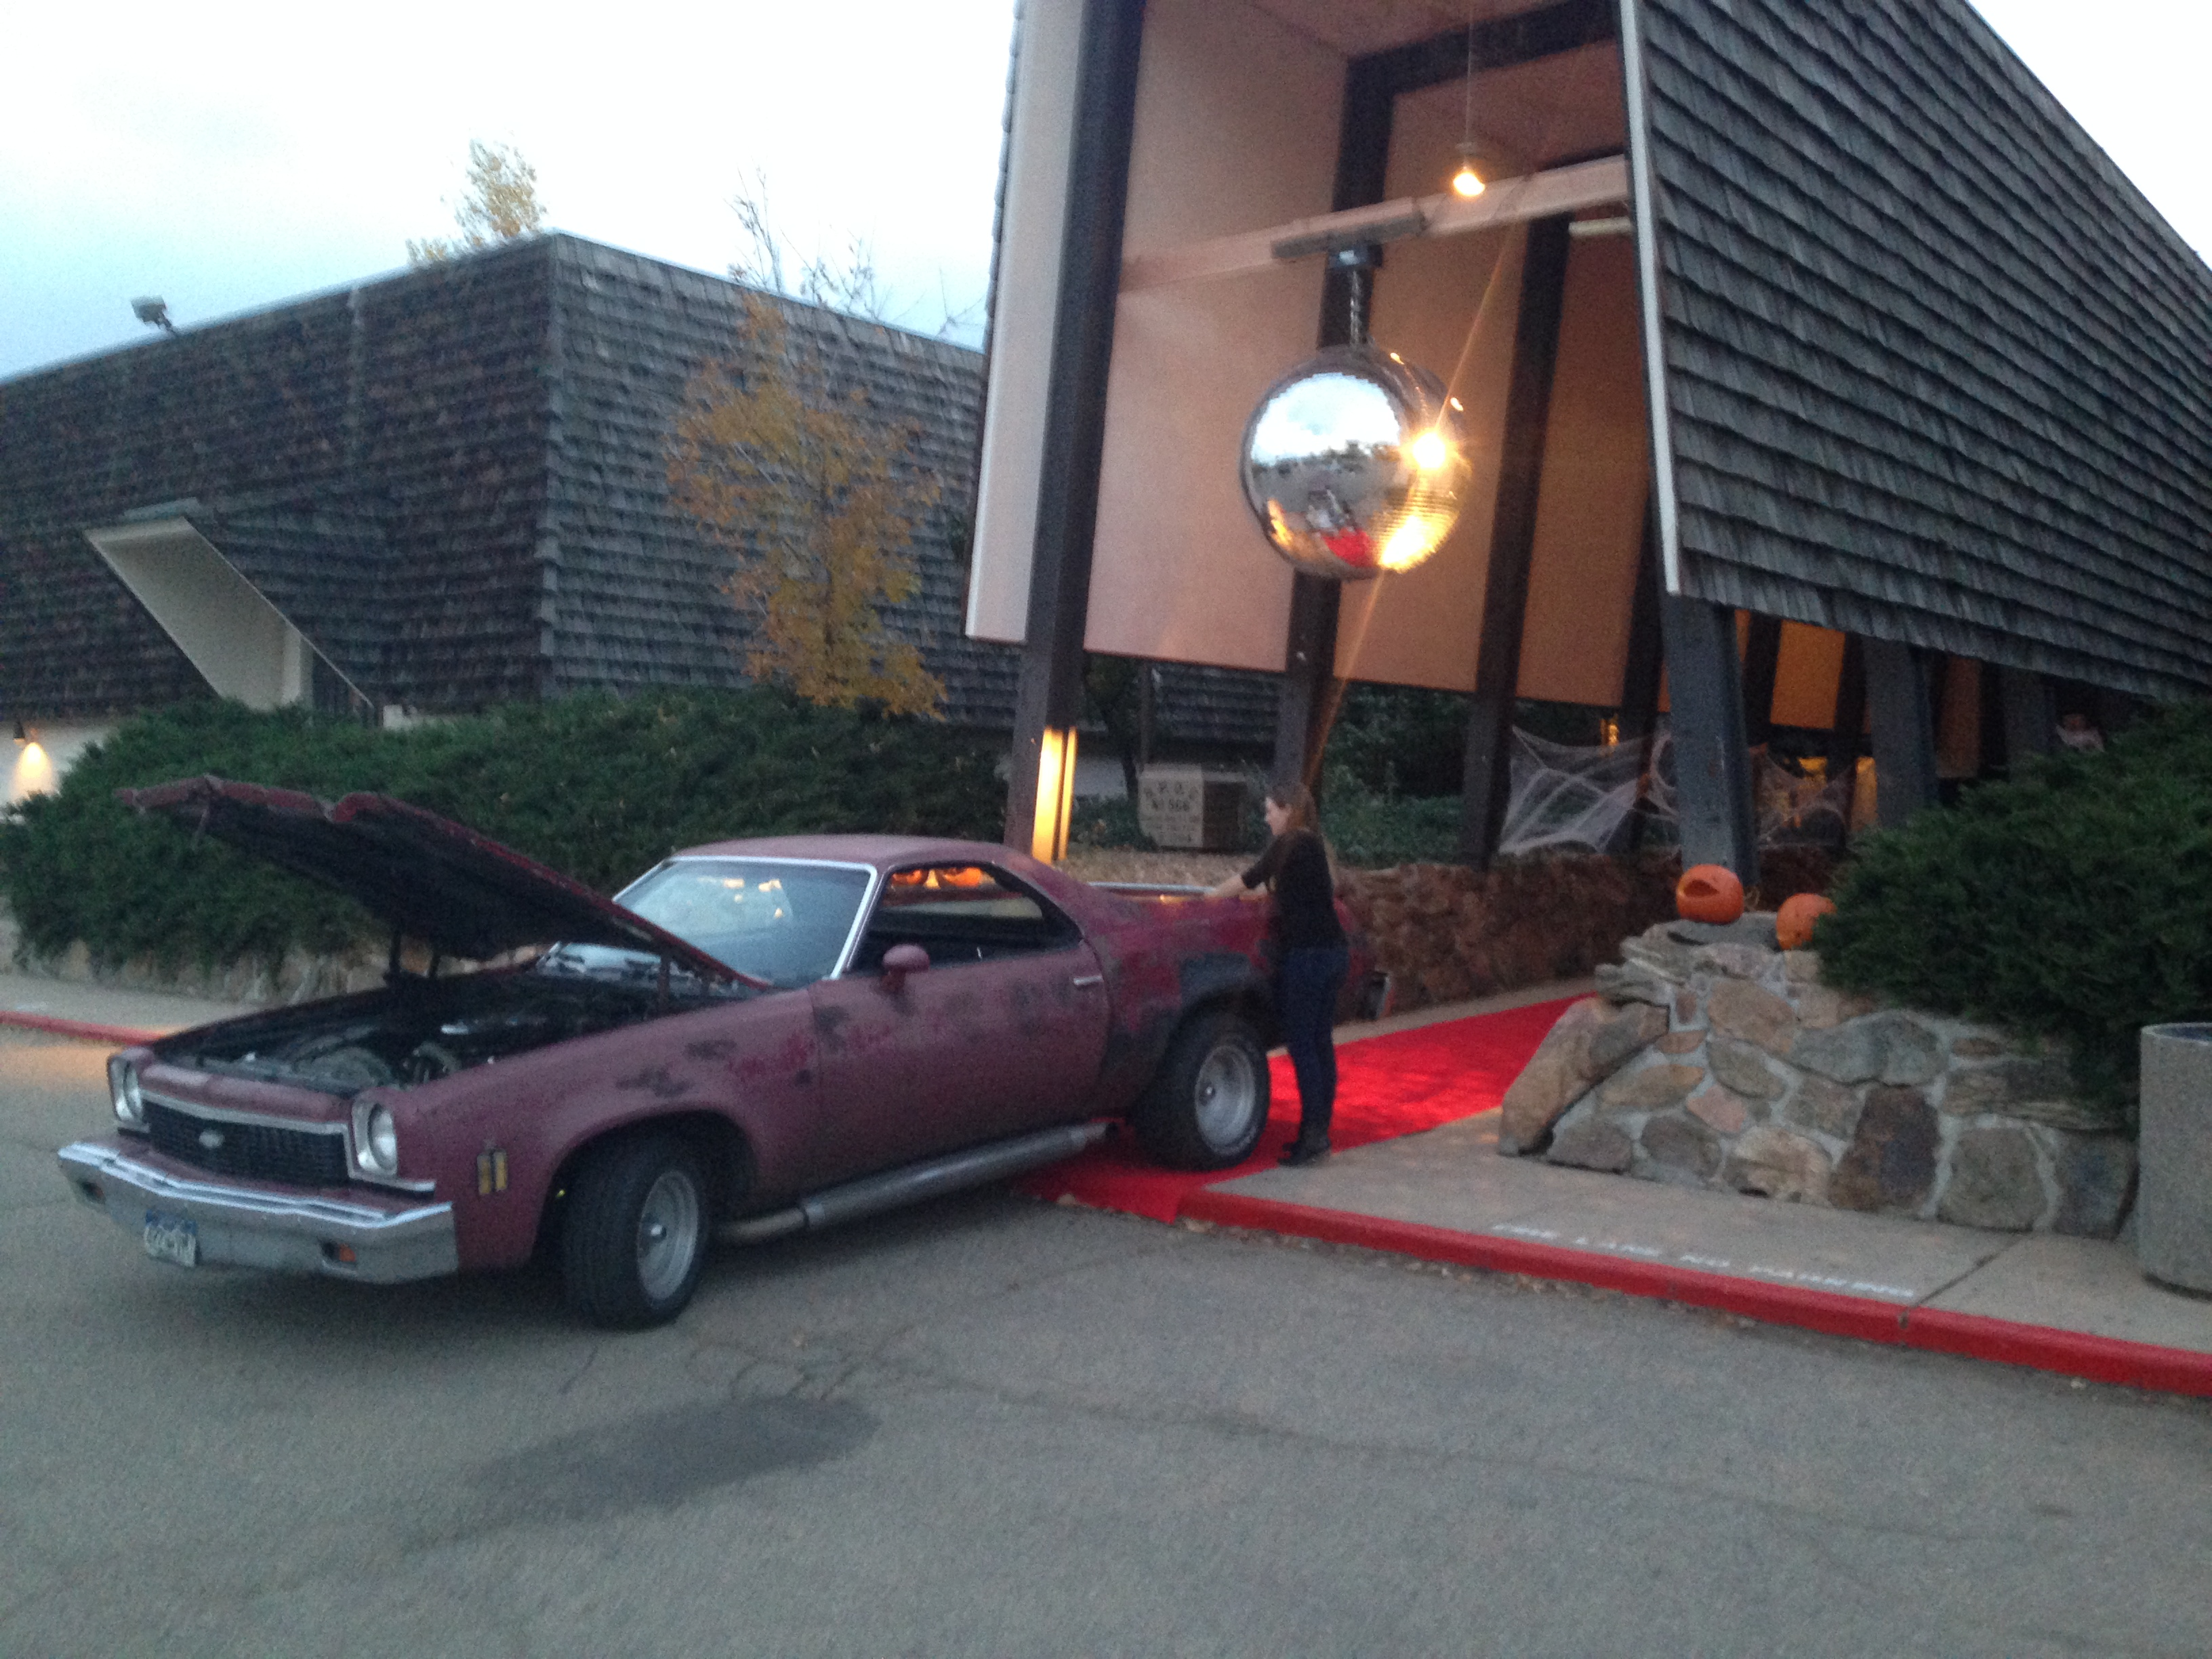 The El Camino parked in front! Party Time!